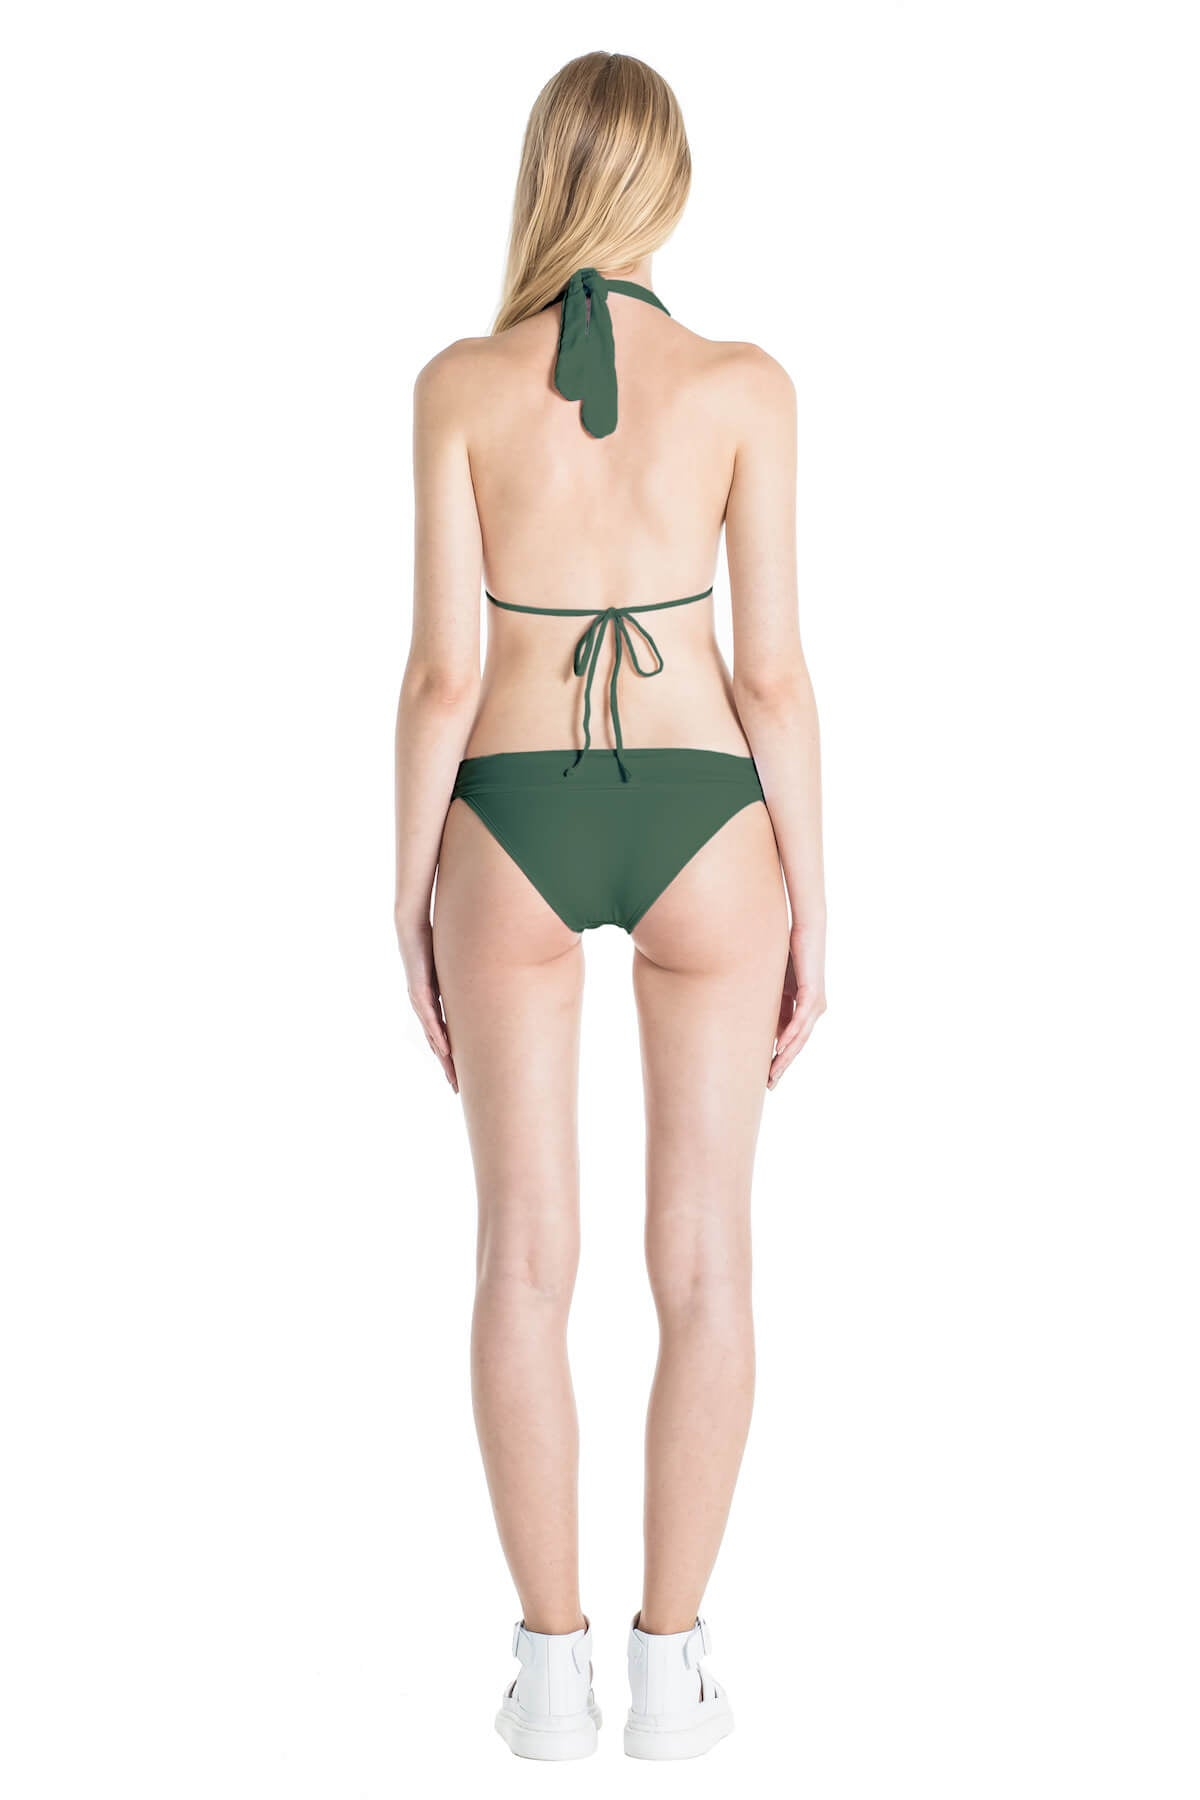 Back of Nina classic bikini bottoms in Green.